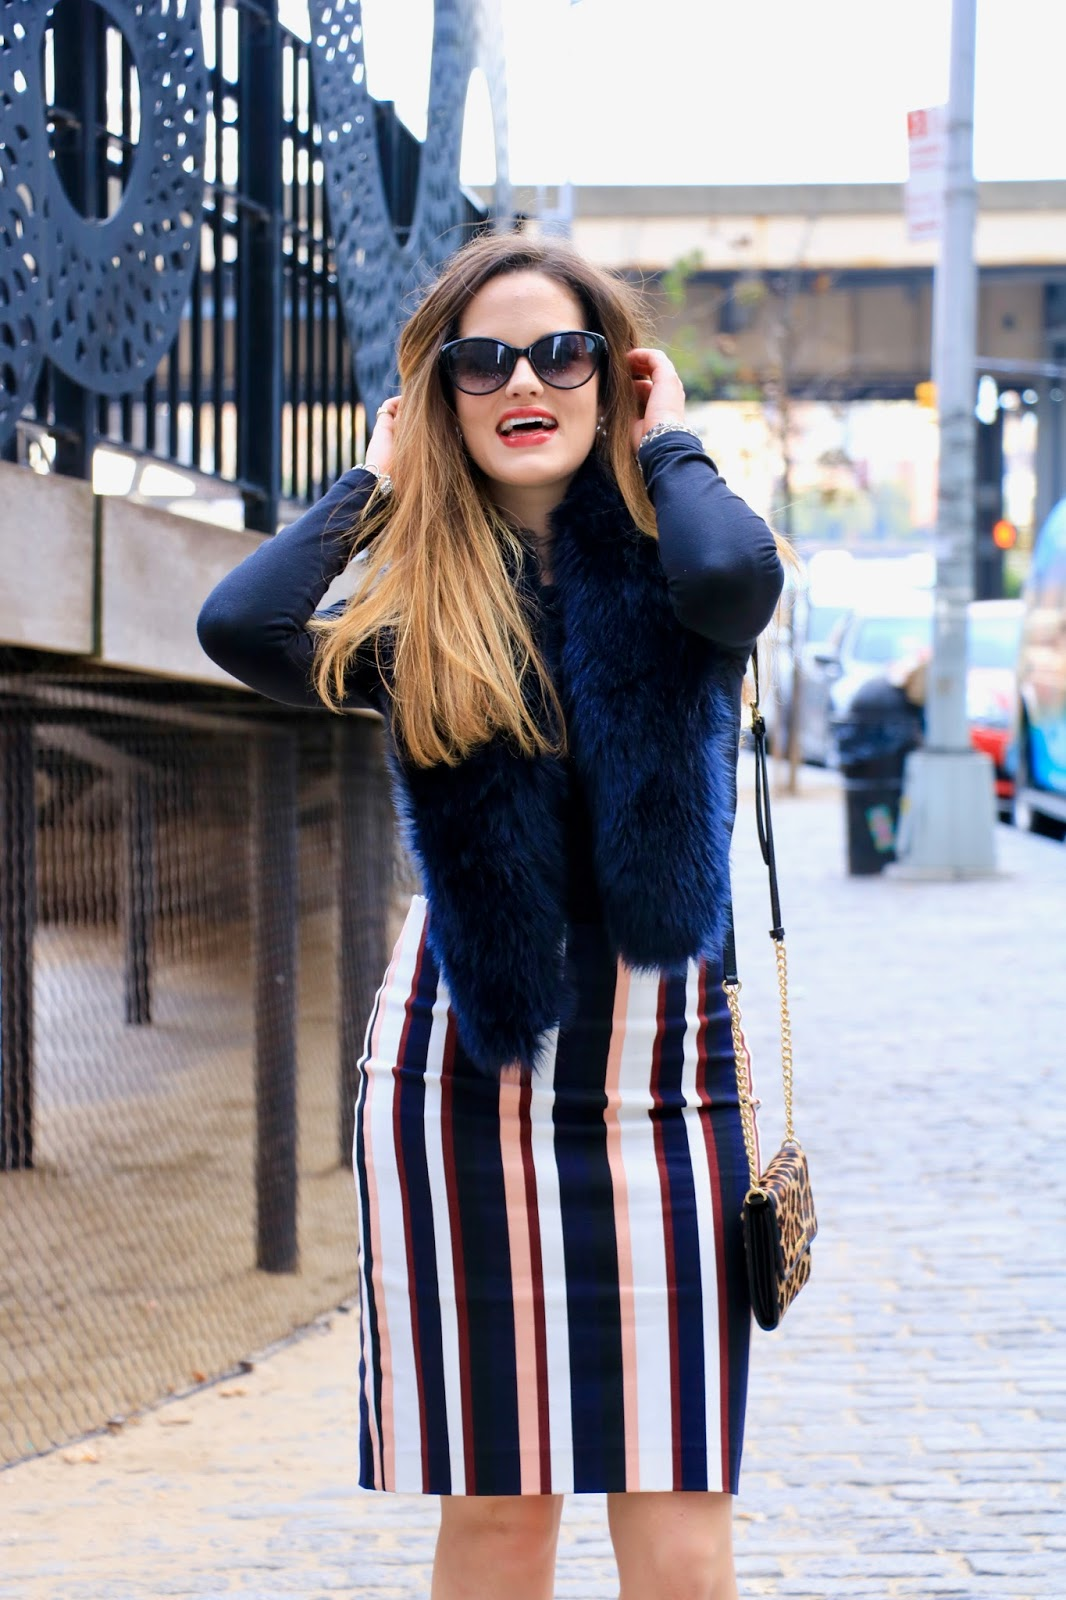 Nyc fashion blogger Kathleen Harper's fall work outfit ideas